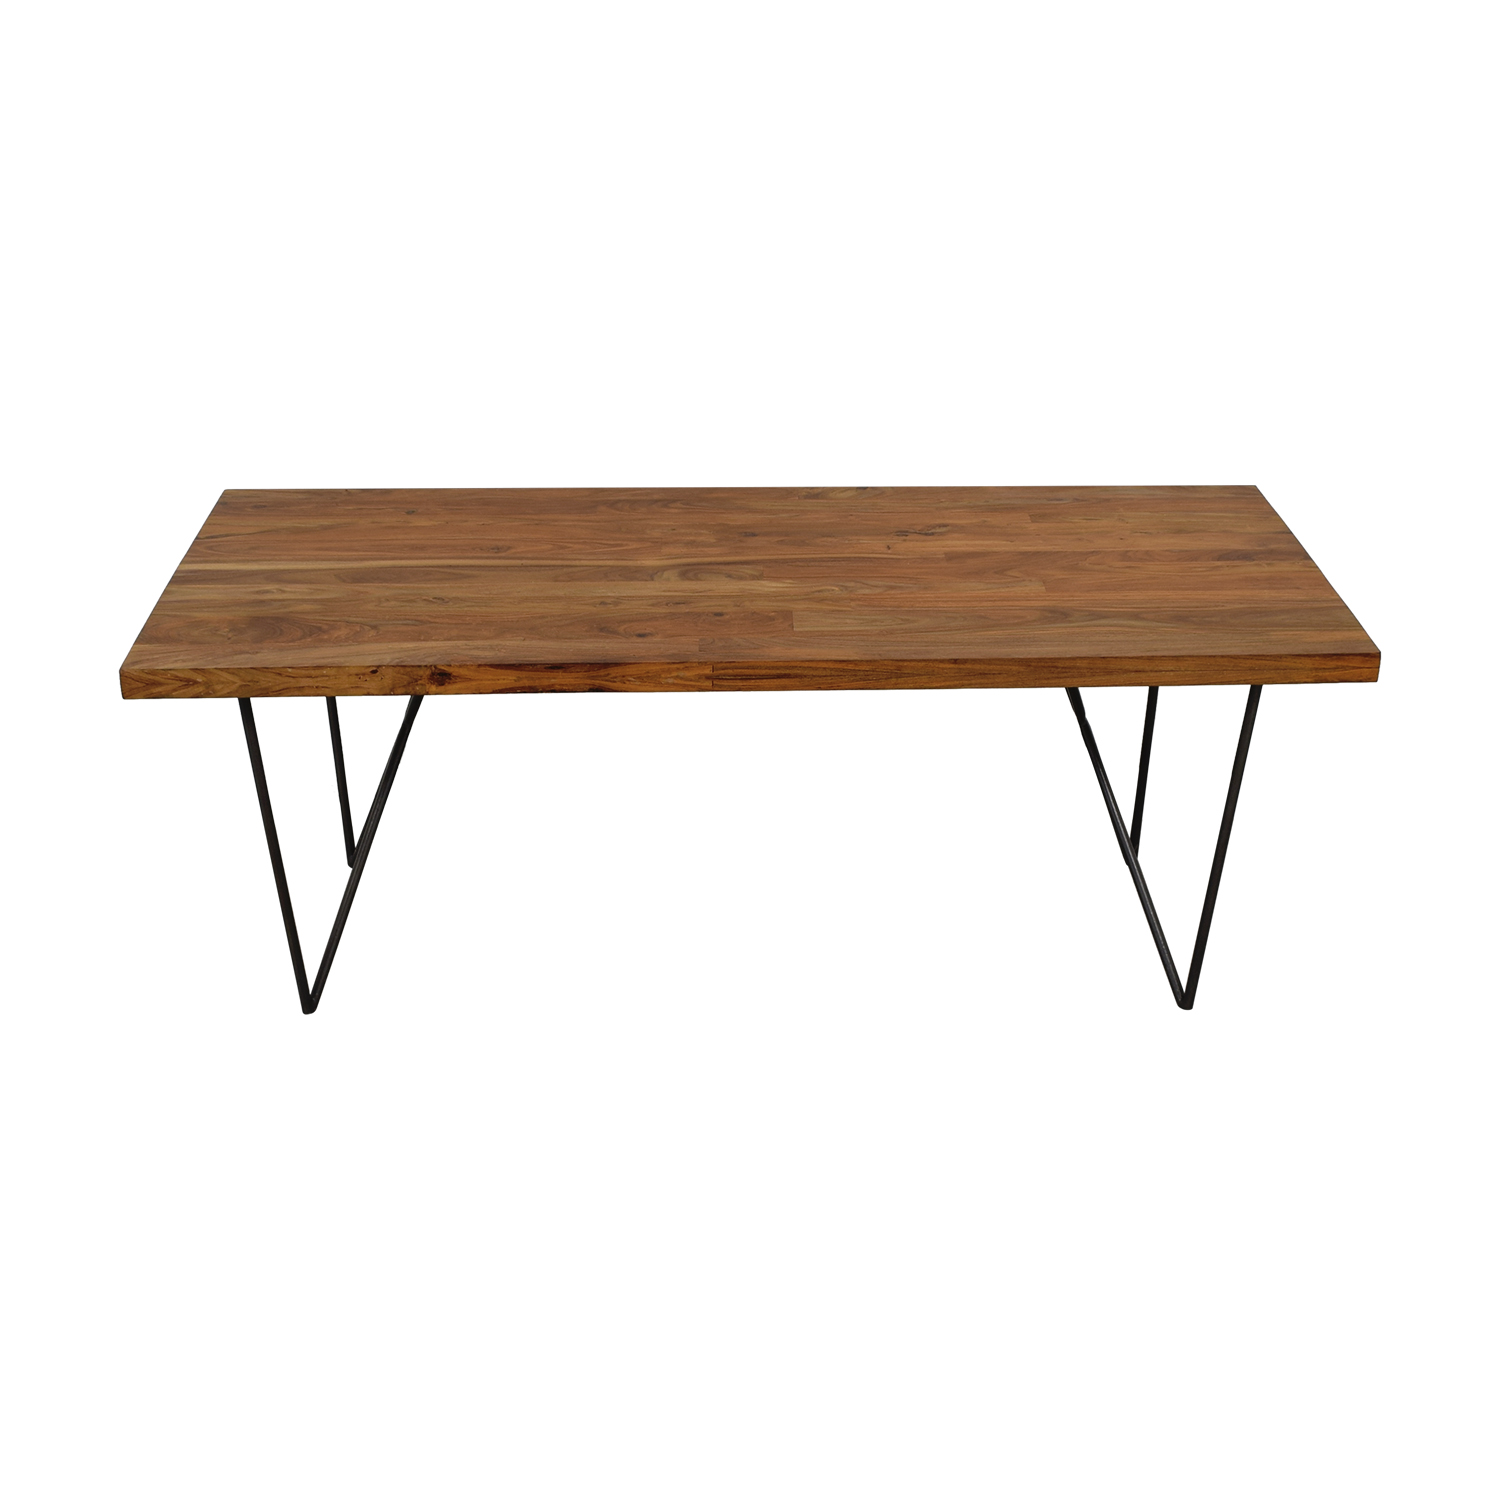 CB2 CB2 Dylan Wood Dining Table nyc